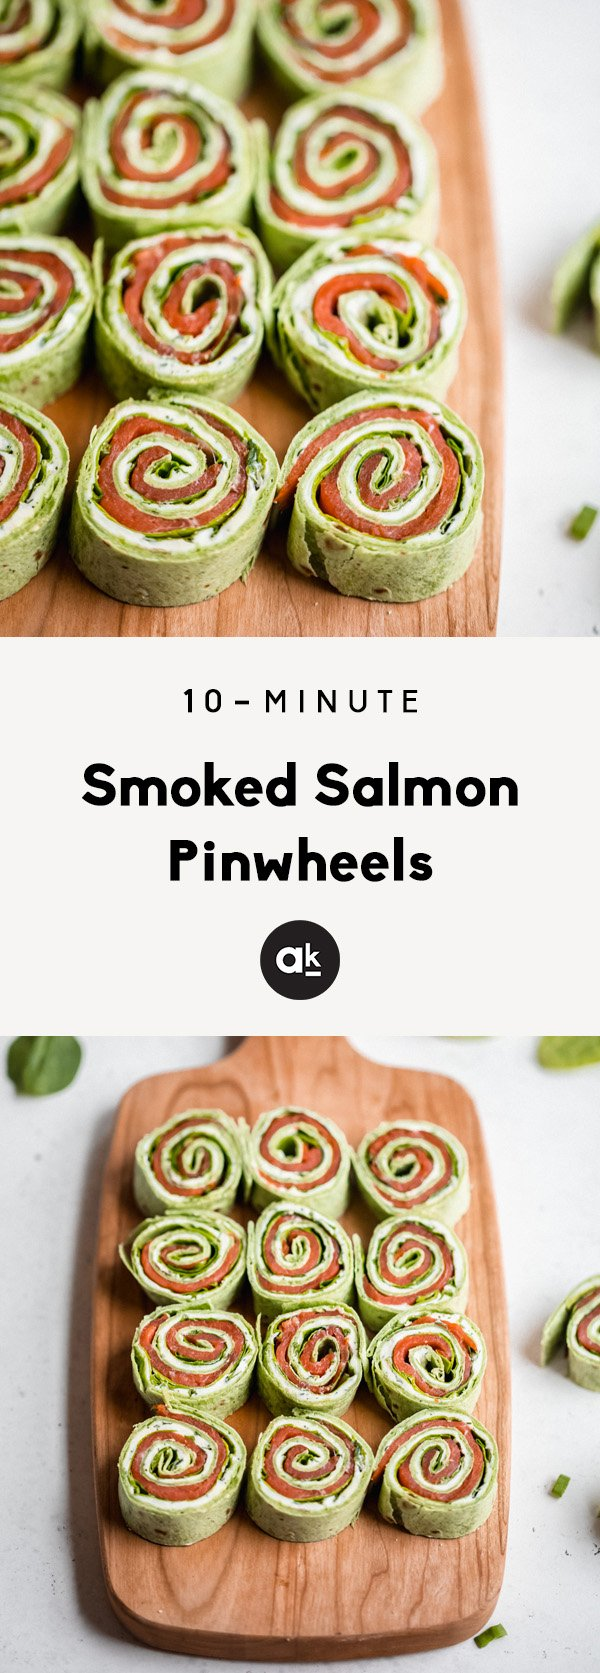 Deliciously savory smoked salmon pinwheels rolled up with a flavorful chive and dill cream cheese and tons of fresh spinach. This easy, healthy appetizer comes together in just 10 minutes for the ultimate party food or snack!